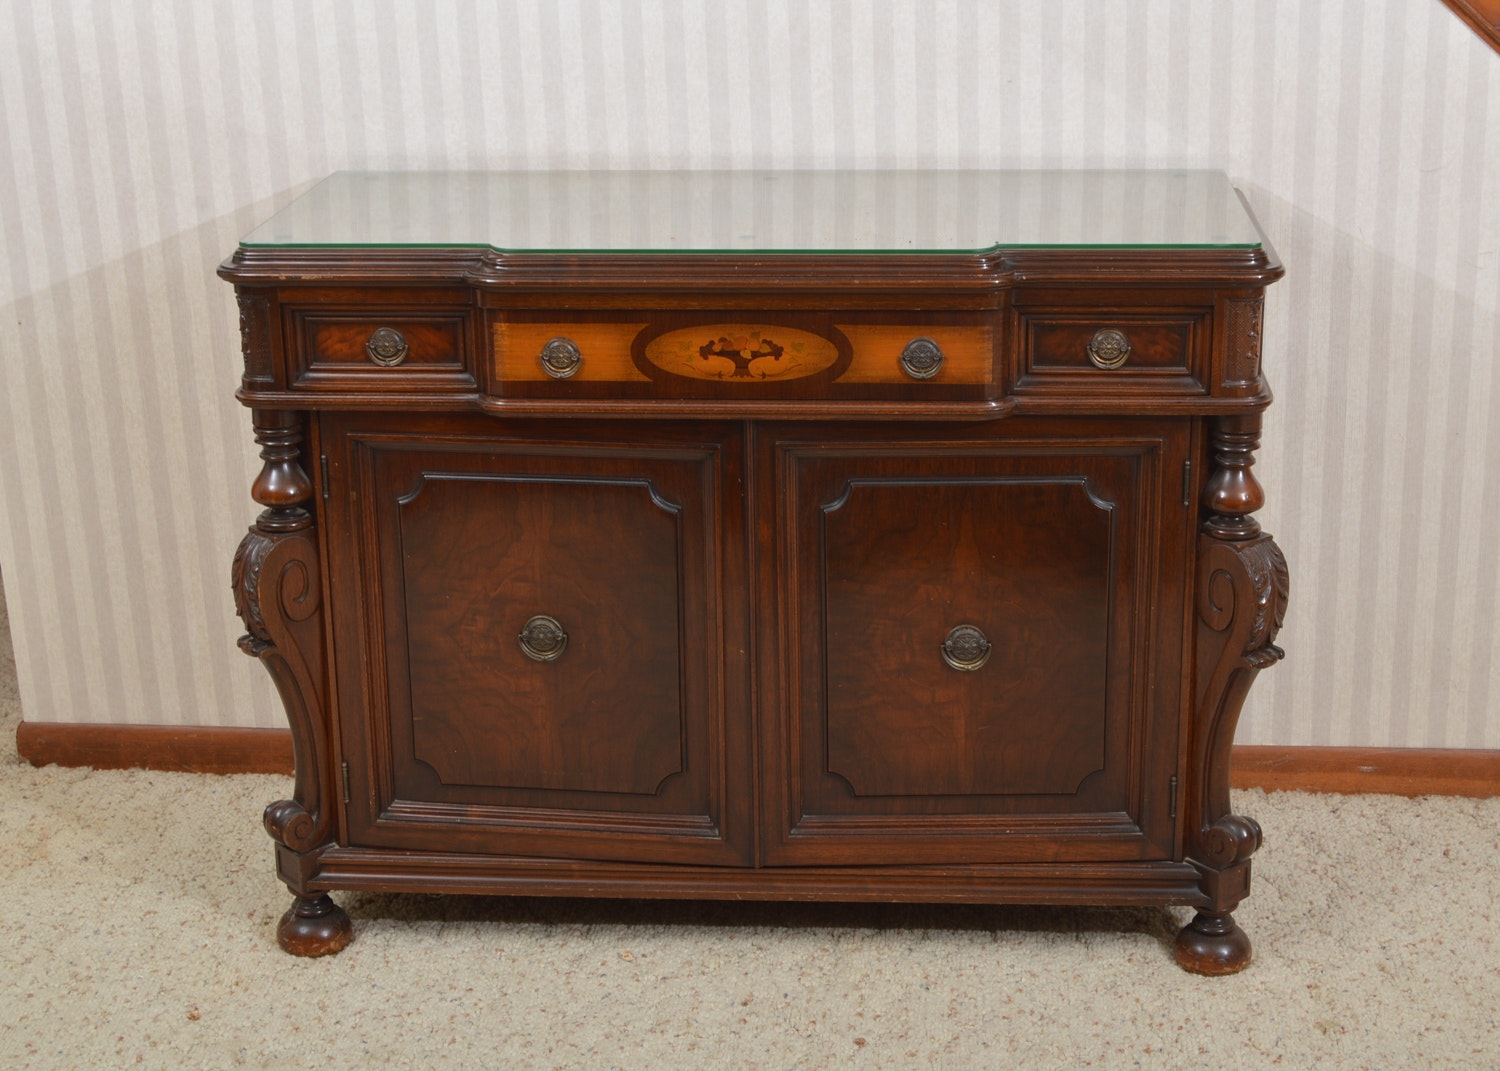 Jacobean Style Sideboard by West End Furniture of Rockford, Illinois